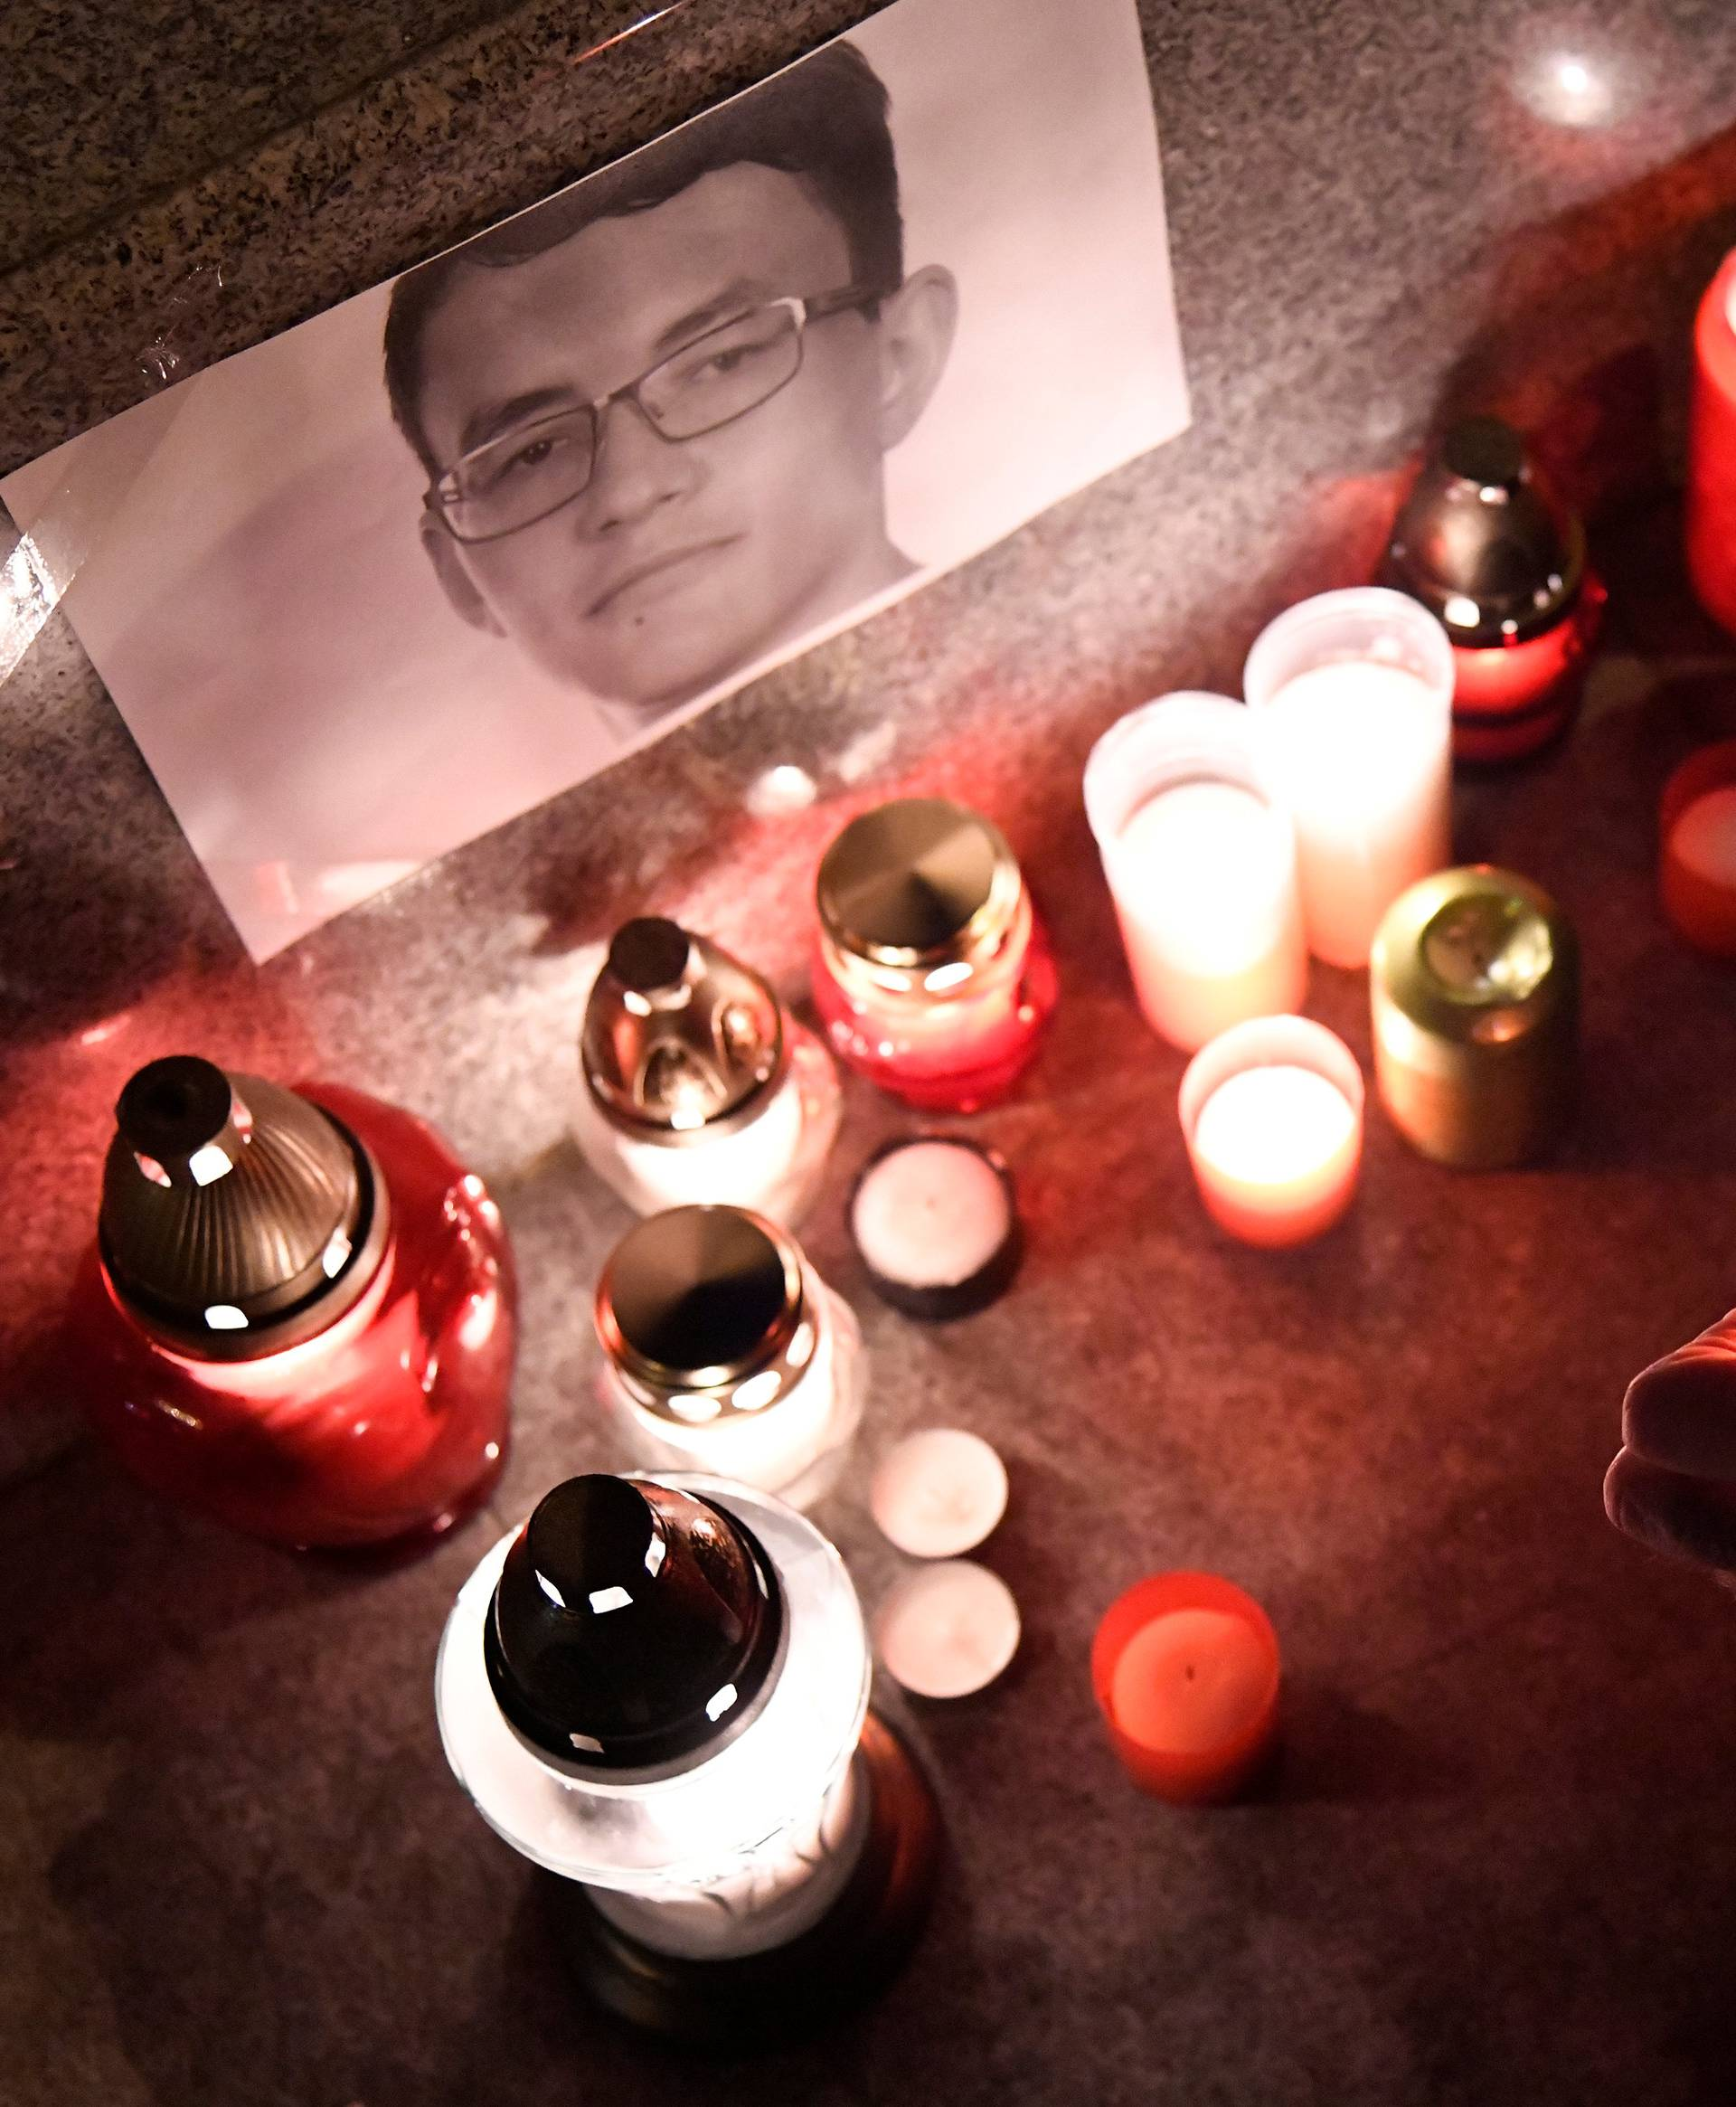 A journalist lights a candle in memory of murdered investigative journalist Jan Kuciak, in Trencin